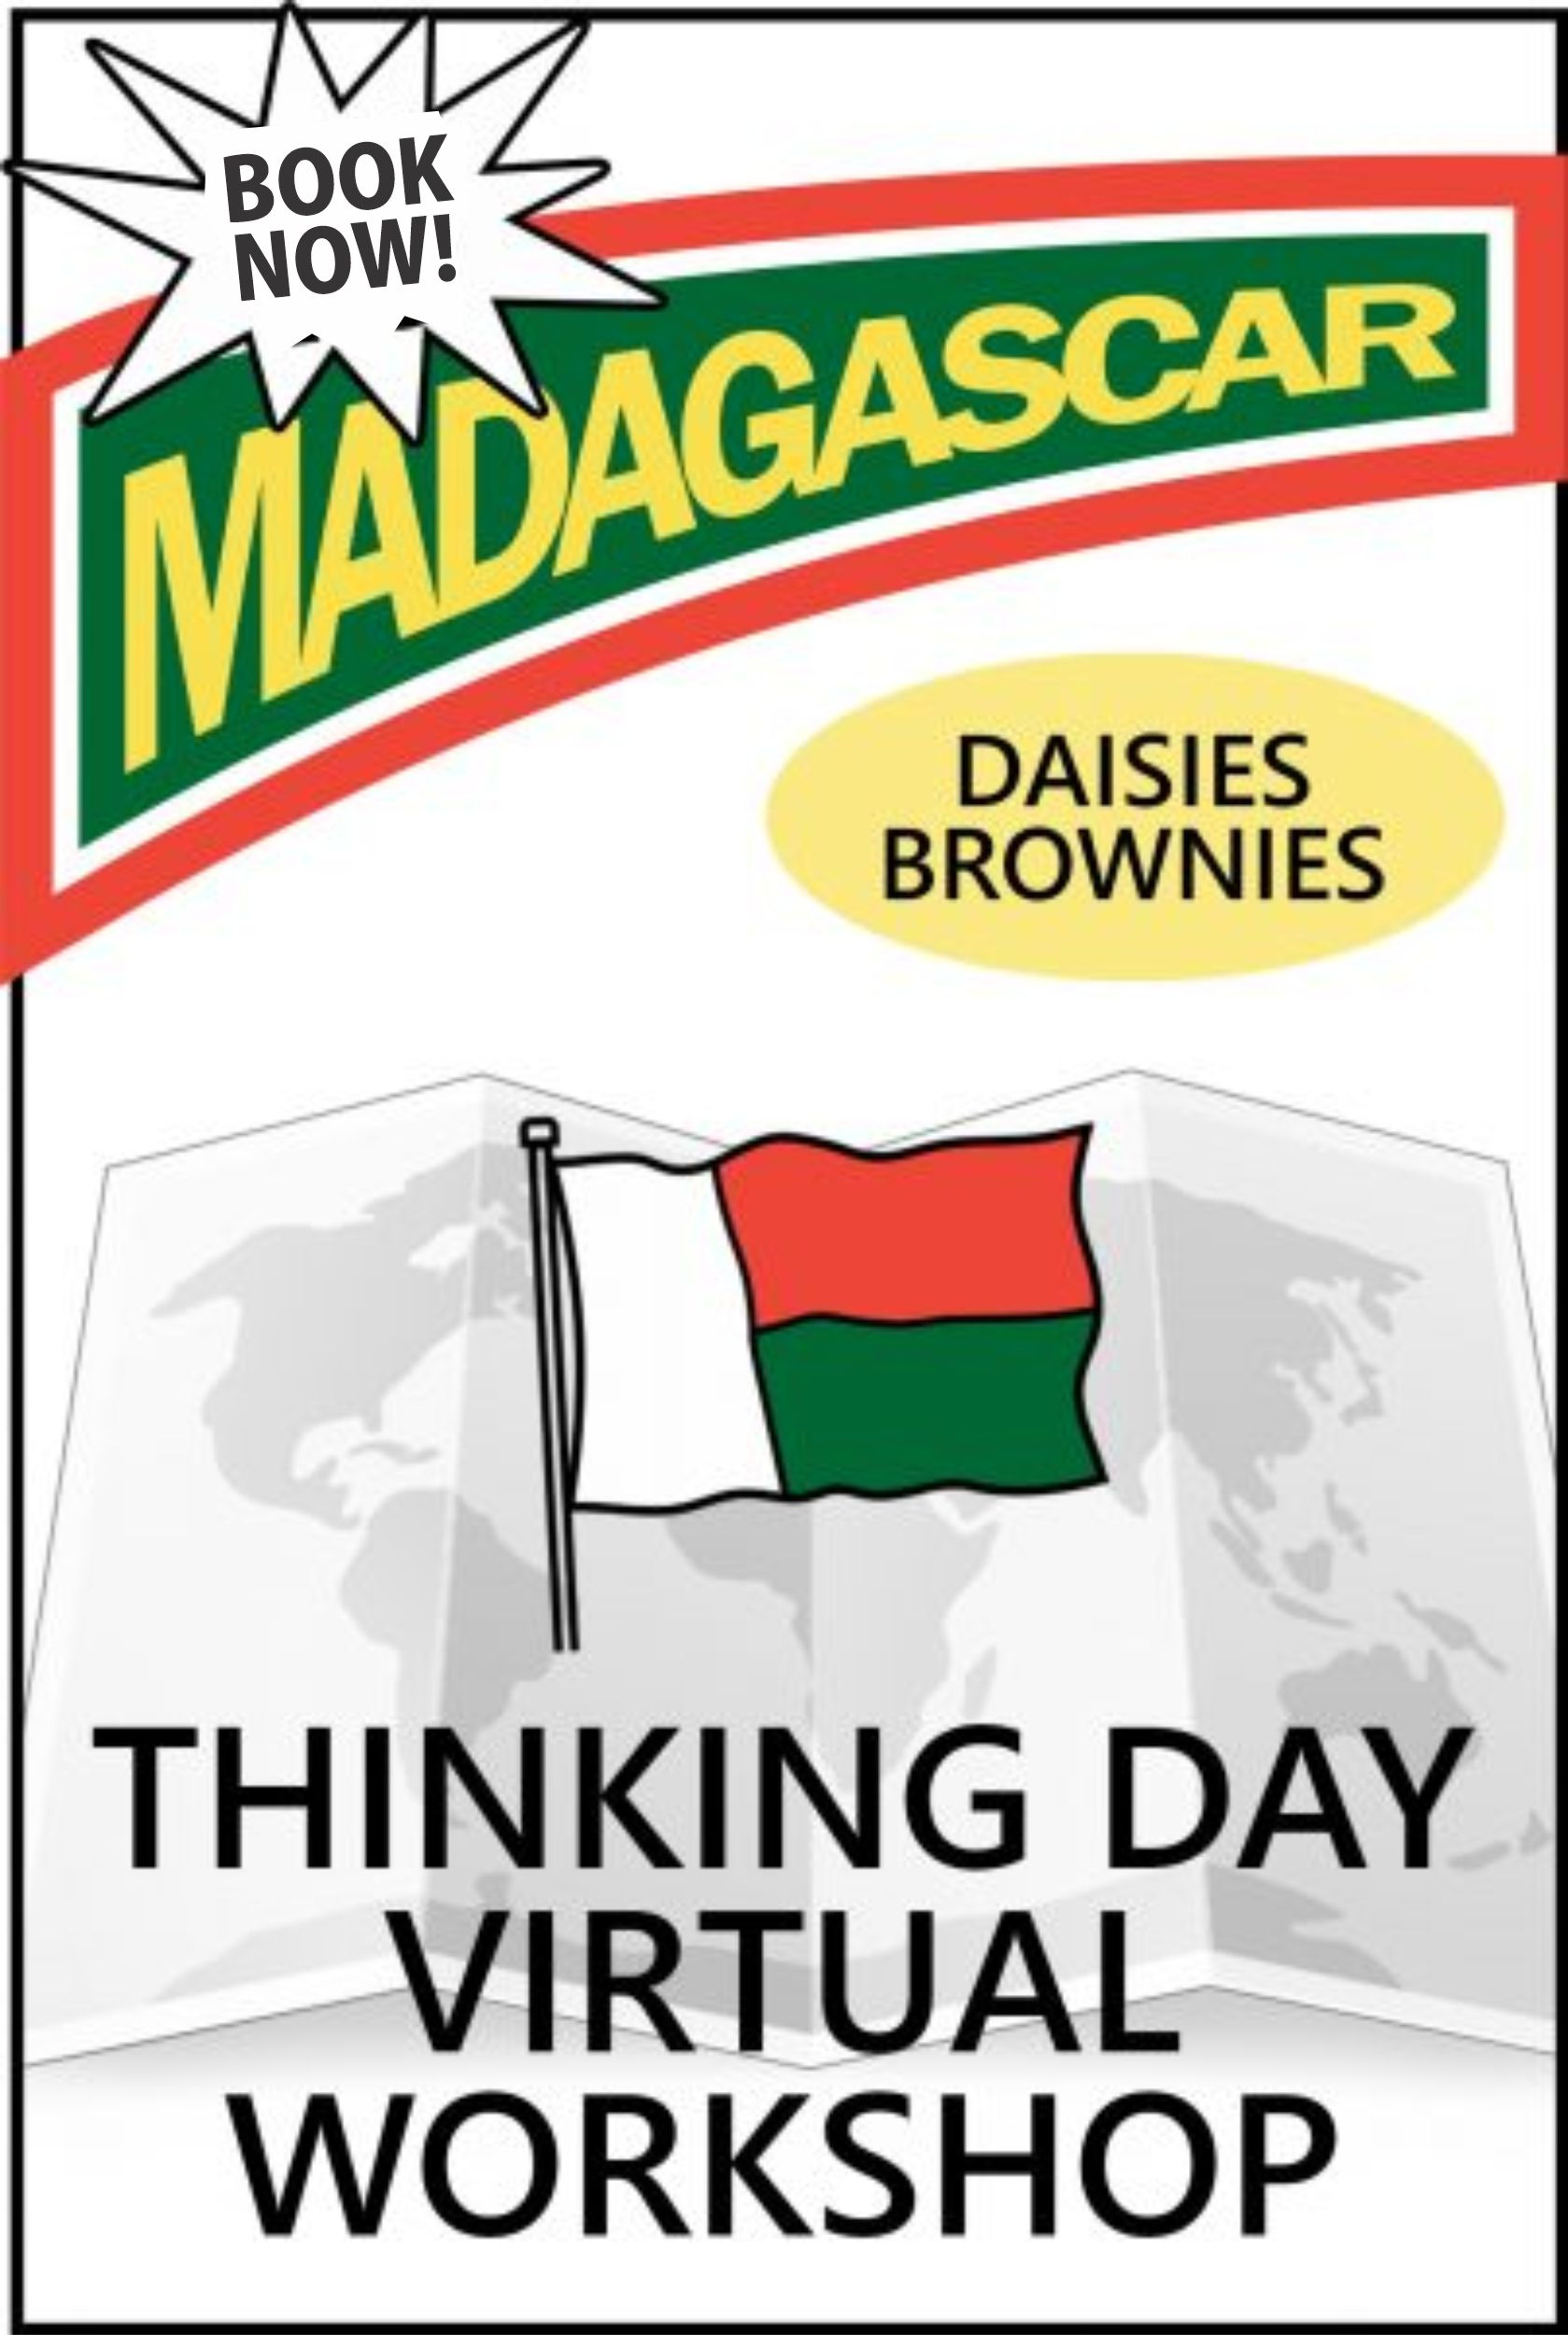 Join us for our Madagascar Thinking Day Virtual Event on zoom! The price includes supplies and an embroidered patch! #madagascar #thinkingday #onlineclass #virtualgirlscouts #virtualthinkingday #daisies #brownies #makingfriends #mf #scoutingfromhome #girlscouts #scouts via @gsleader411